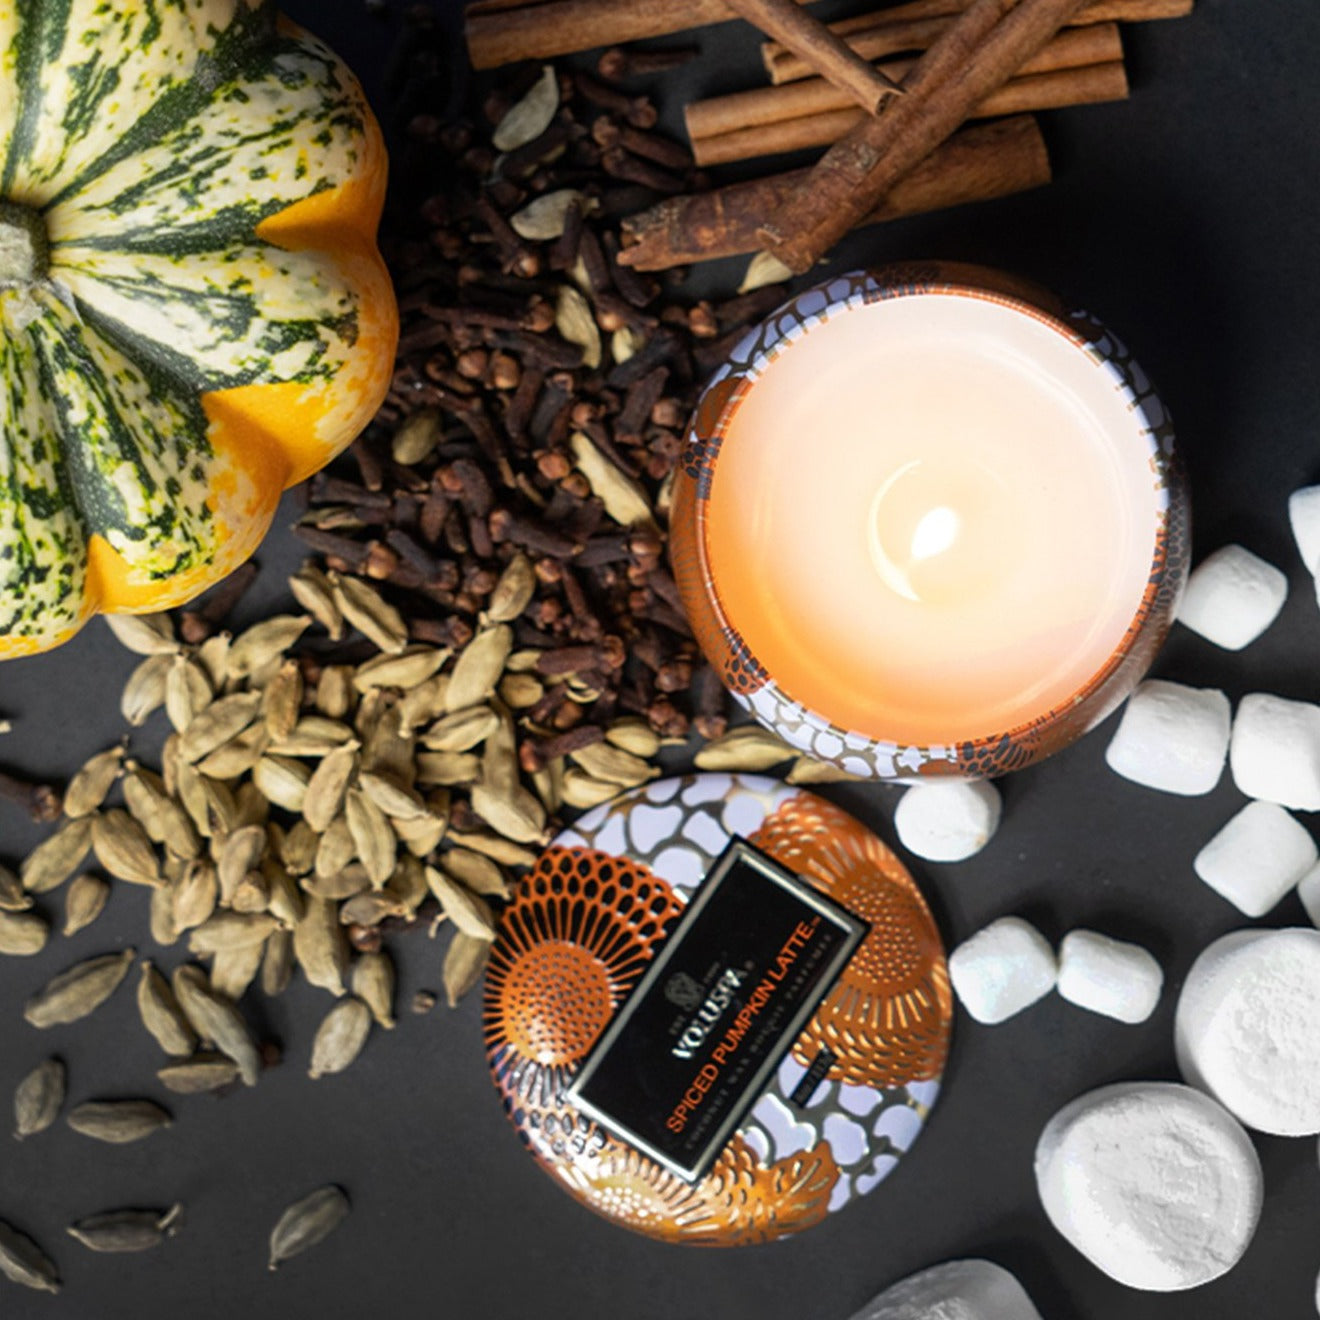 VOLUSPA Spiced Pumpkin Latte Decorative Candle